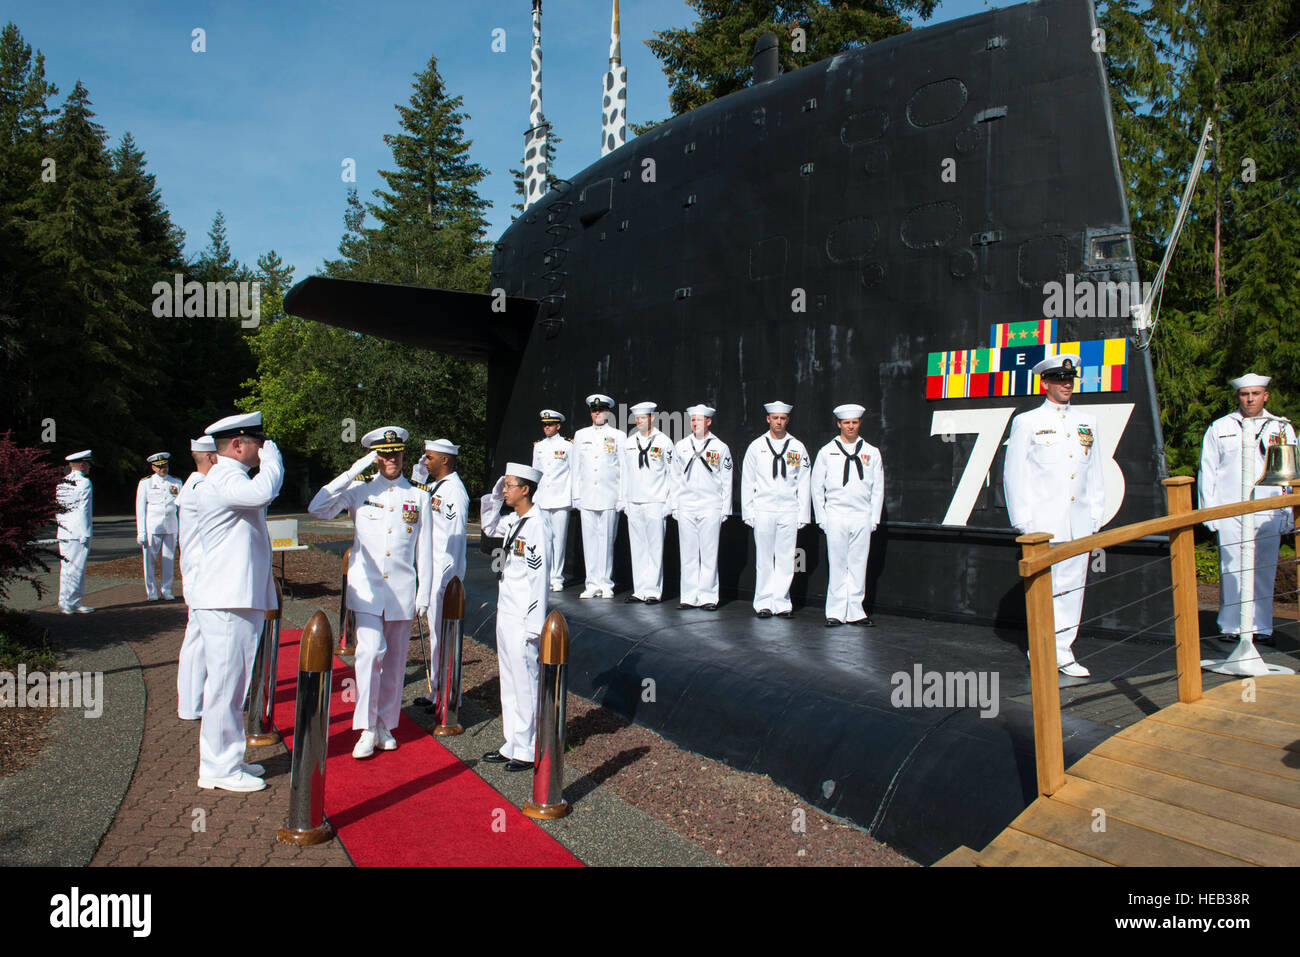 BANGOR, Wash. (Aug. 26, 2016) Capt. Michael Lewis, the 13th commanding officer of the Los Angeles-class fast-attack submarine USS Houston (SSN 713) and the keynote speaker for the event, arrives at Houston's decommissioning ceremony at Naval Base Kitsap Bangor. Houston concluded 33 years of service as the fourth U.S. warship to be named after Houston, Texas.  Mass Communication Specialist 1st Class Amanda R. Gray Stock Photo